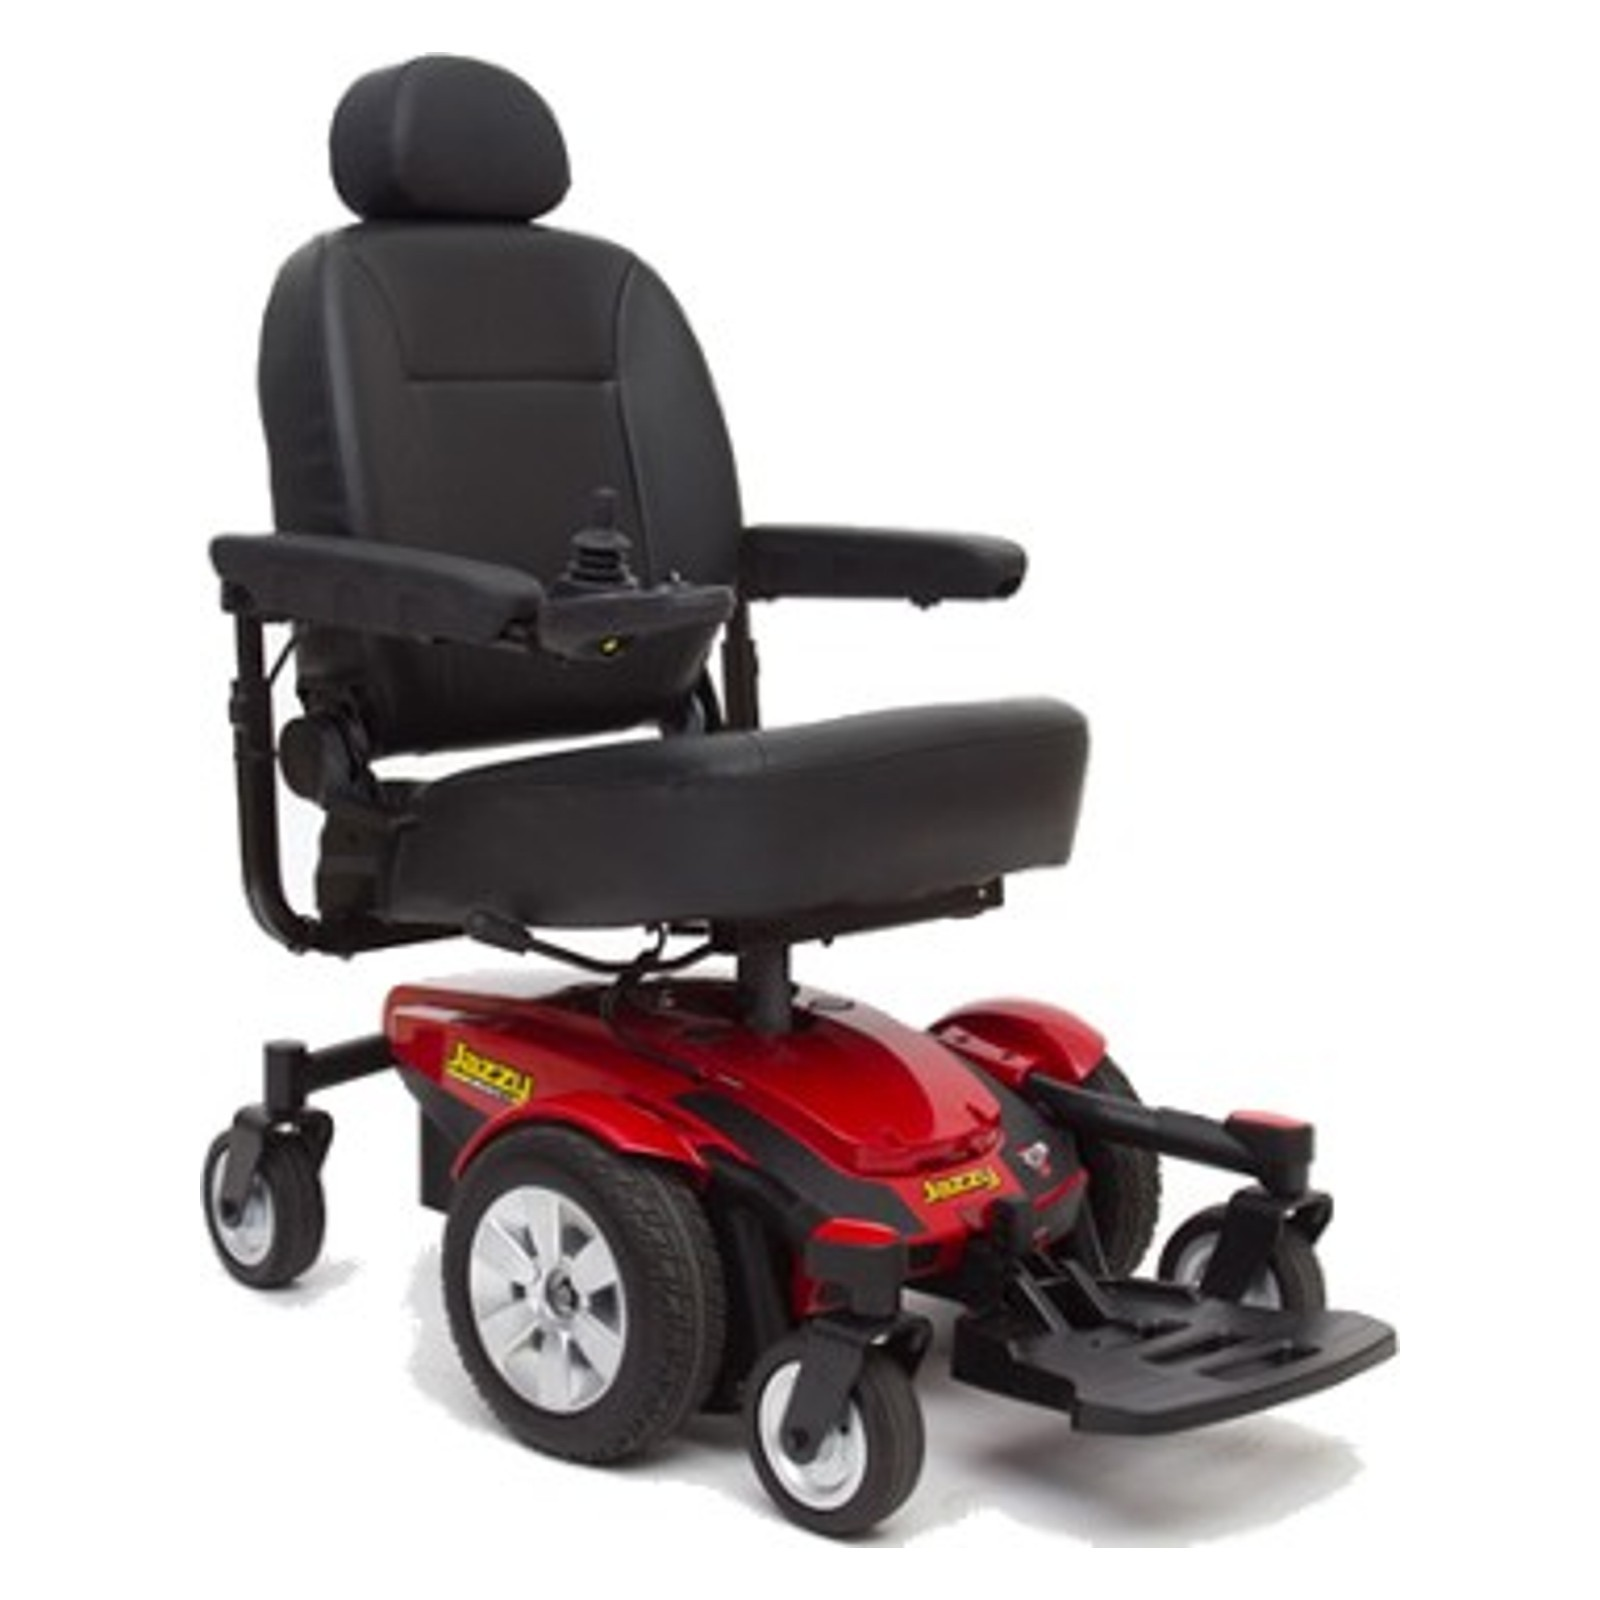 Jet2hd power chair for sale jazzy elite hd power for Motorized wheelchair for sale